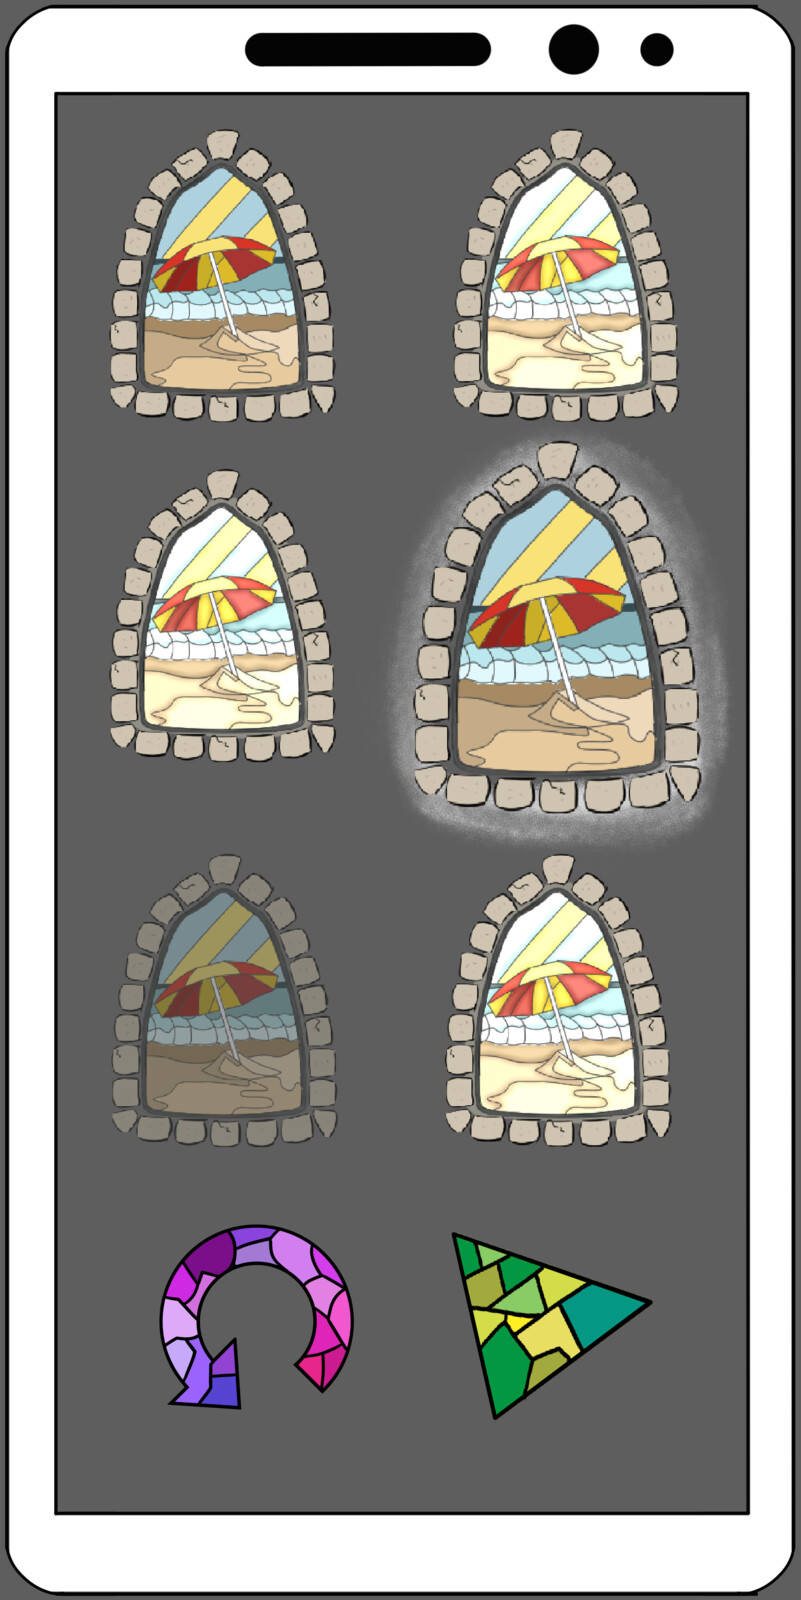 Selecting a window that represents a puzzle